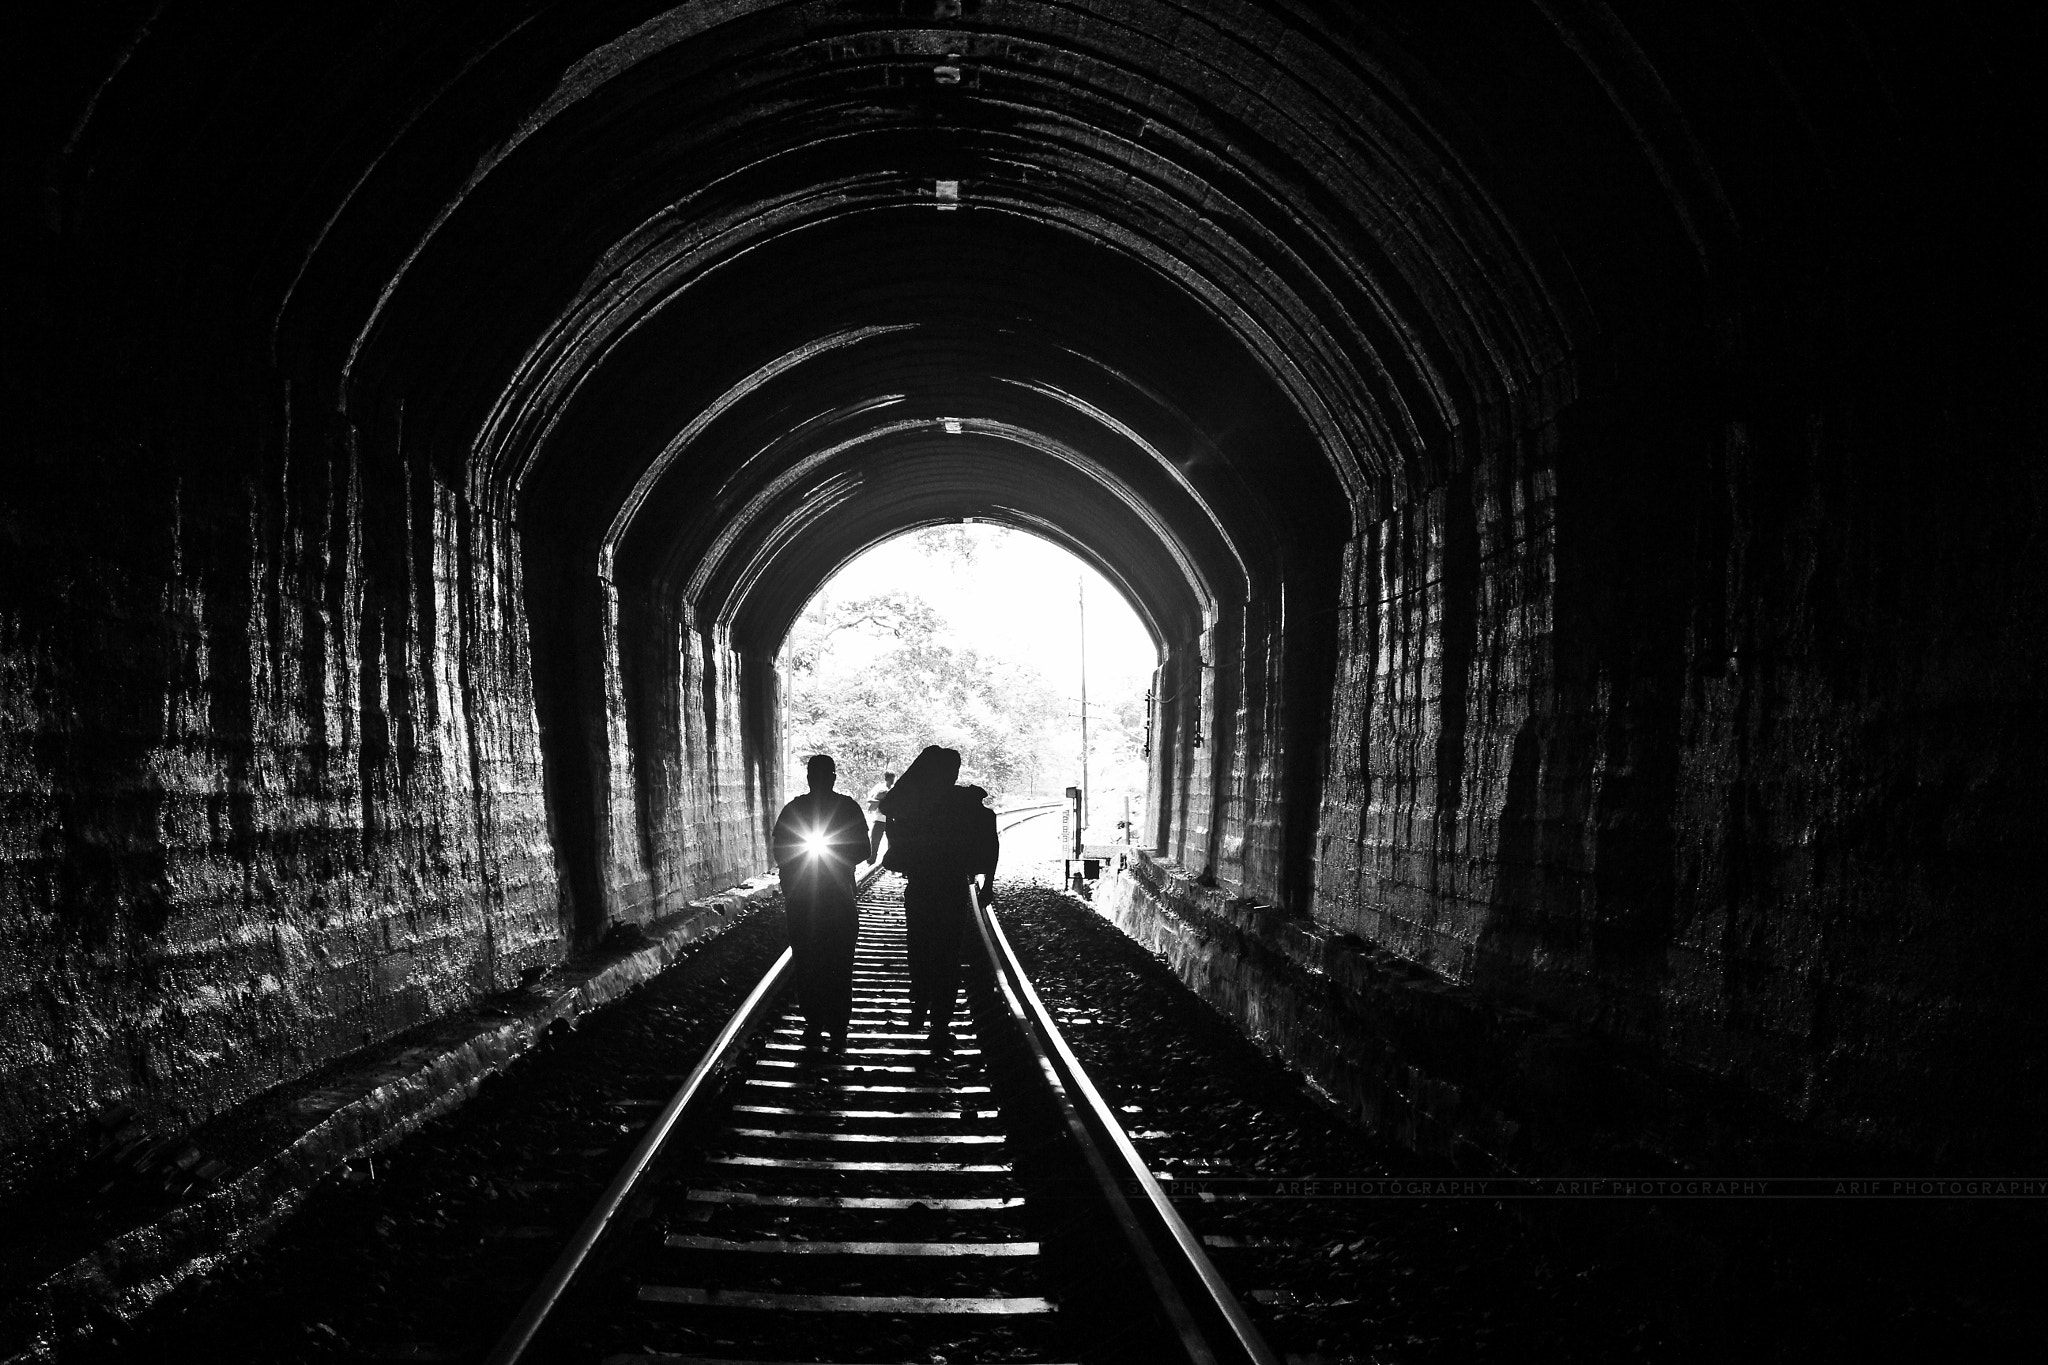 Photograph Light at the end of tunnel by Arif Mohammad on 500px